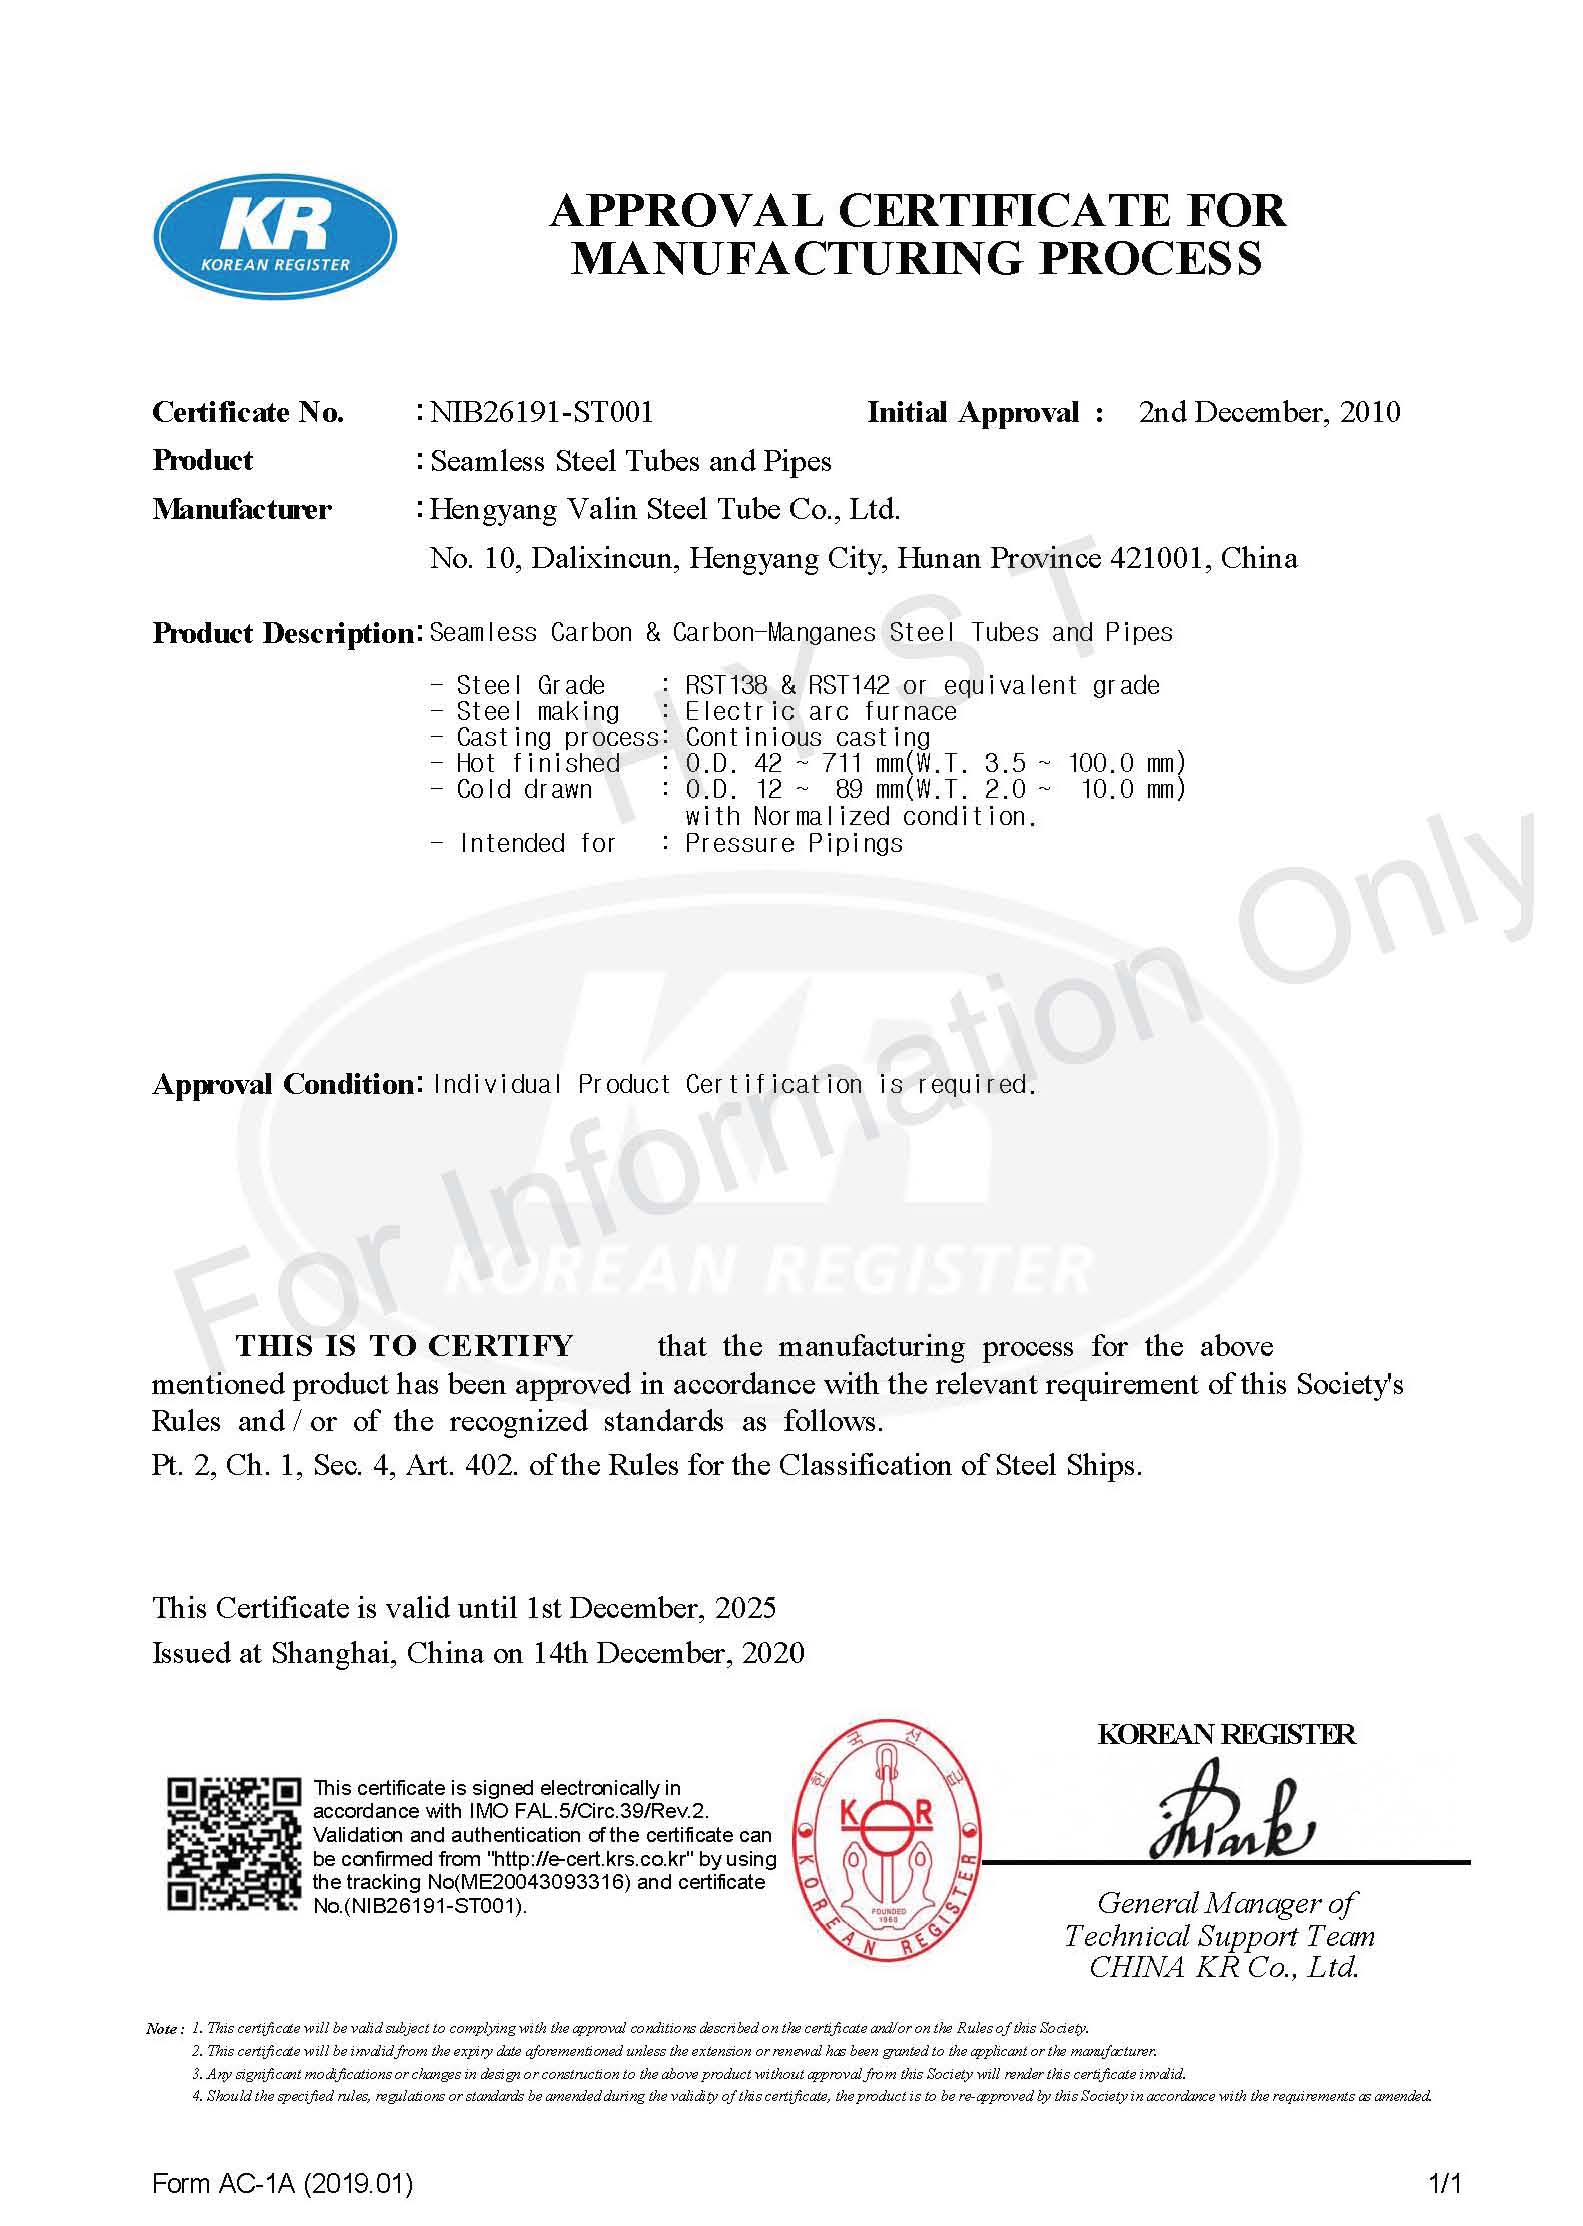 KR Certificate for RST138 & RST142 Steel Pipes